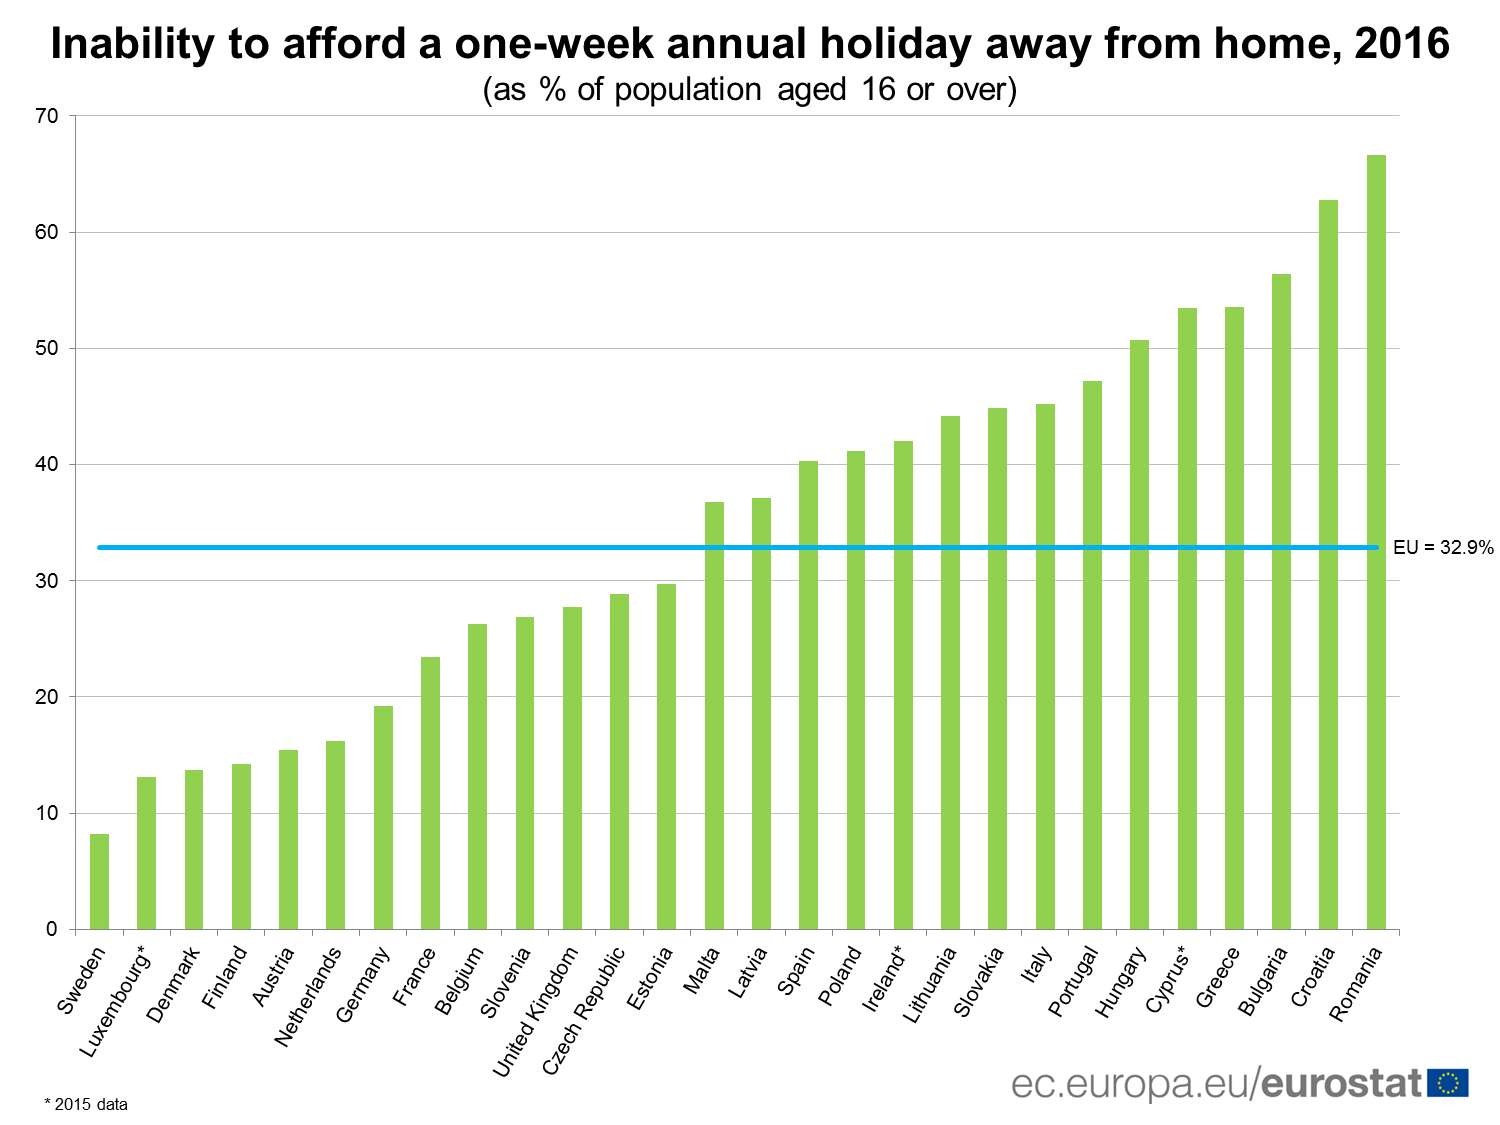 eurostat_cannot_afford_holiday_2016.png